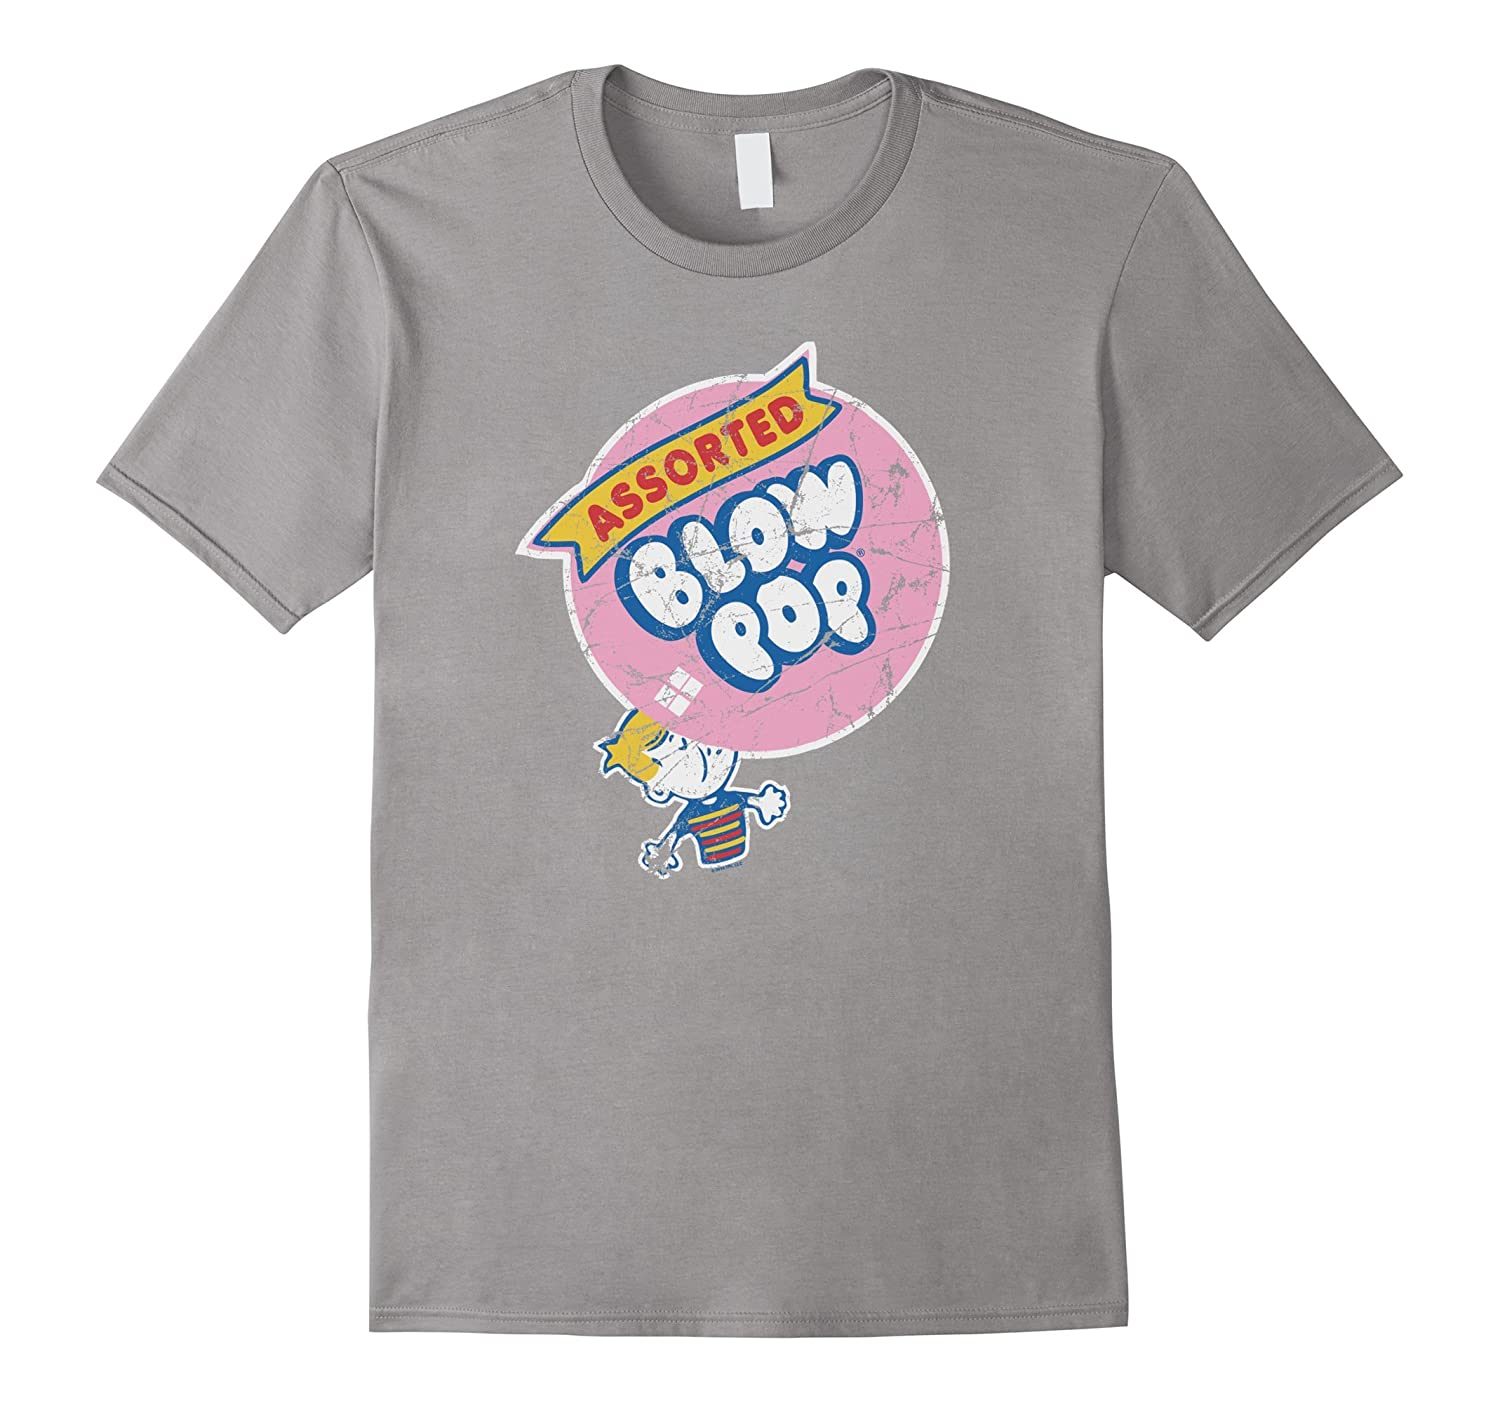 Blow Pop T-Shirt  Classic Look style  10509-TD